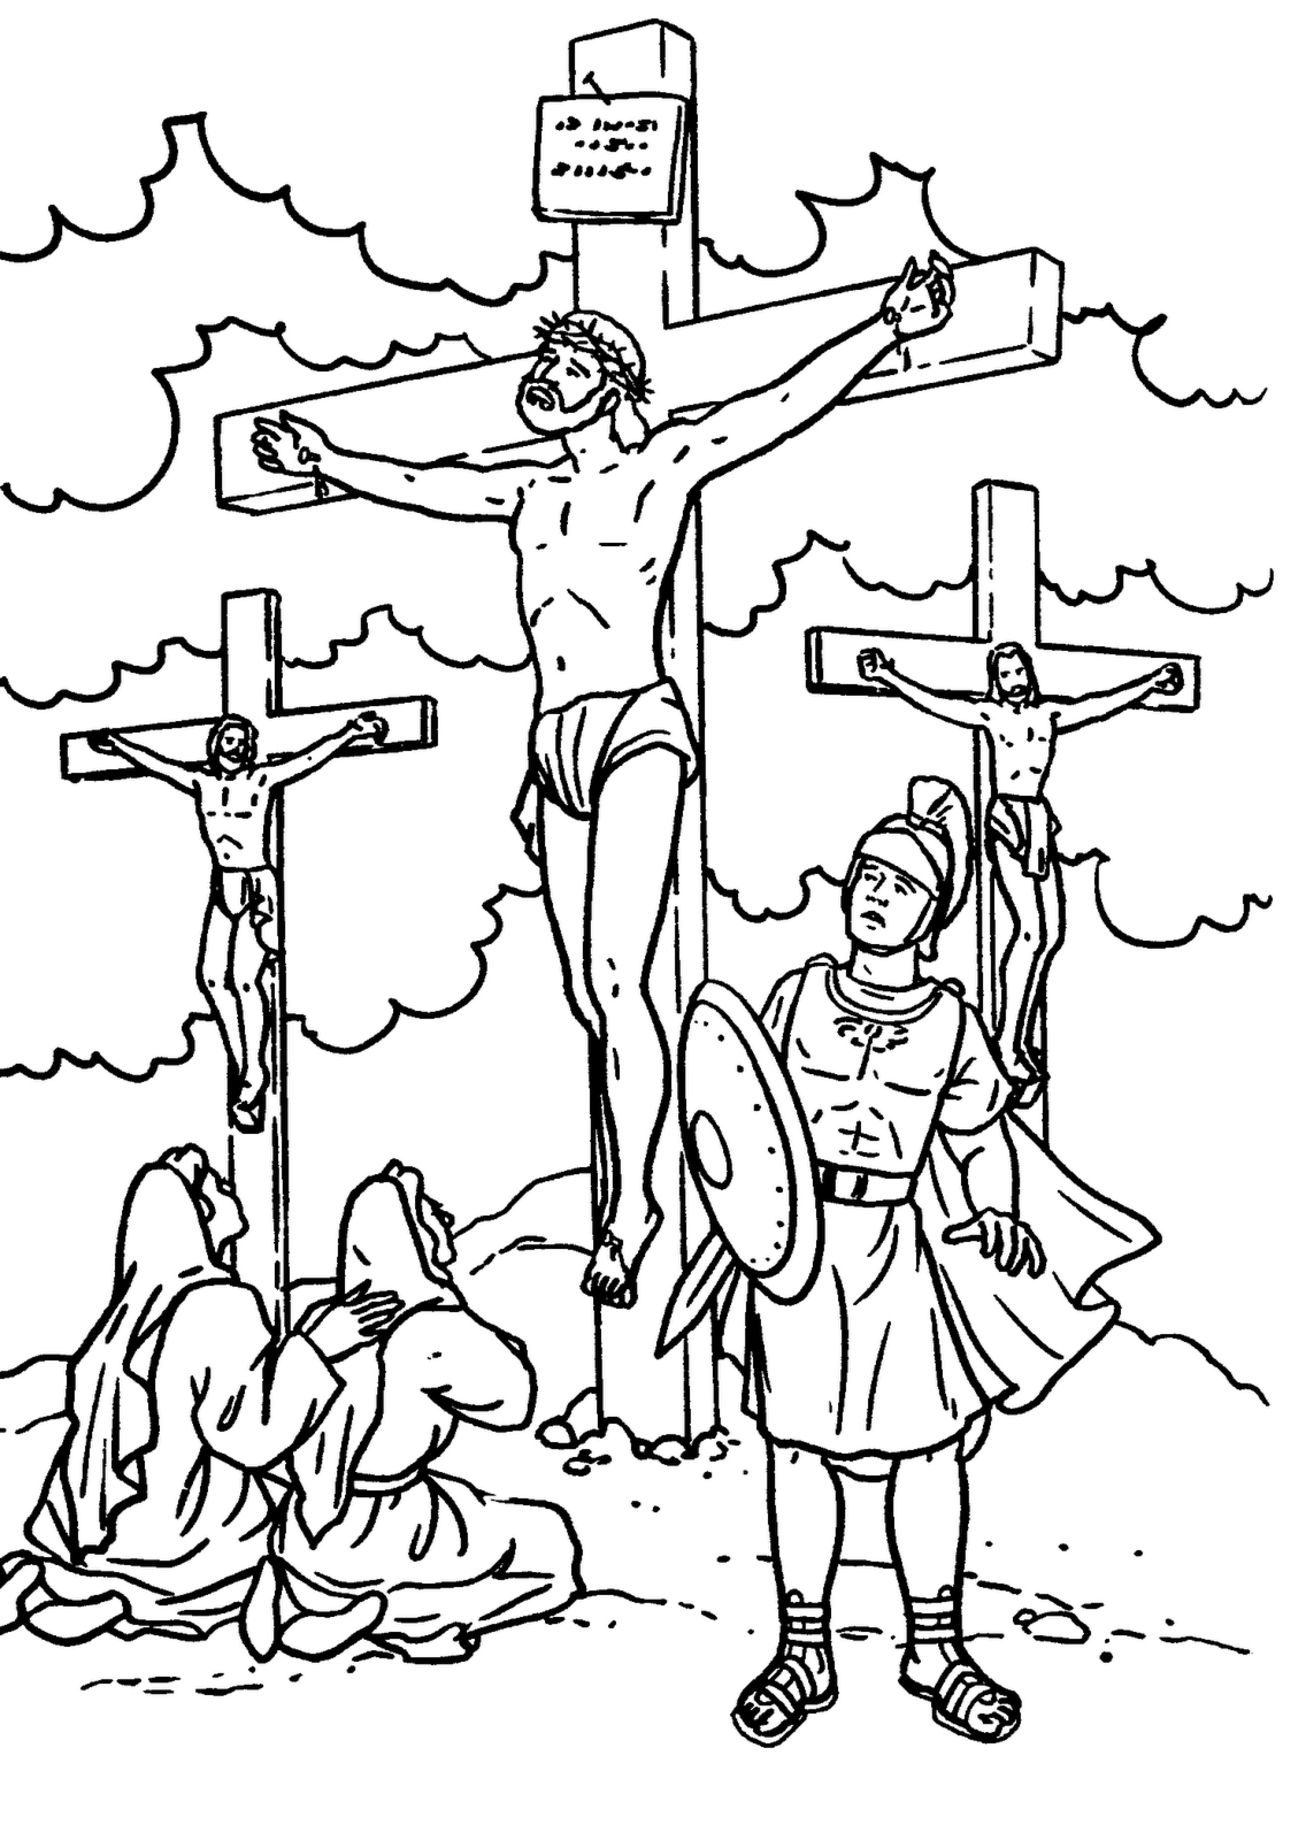 coloring pages for bible stories bible stories coloring pages bible coloring stories for pages